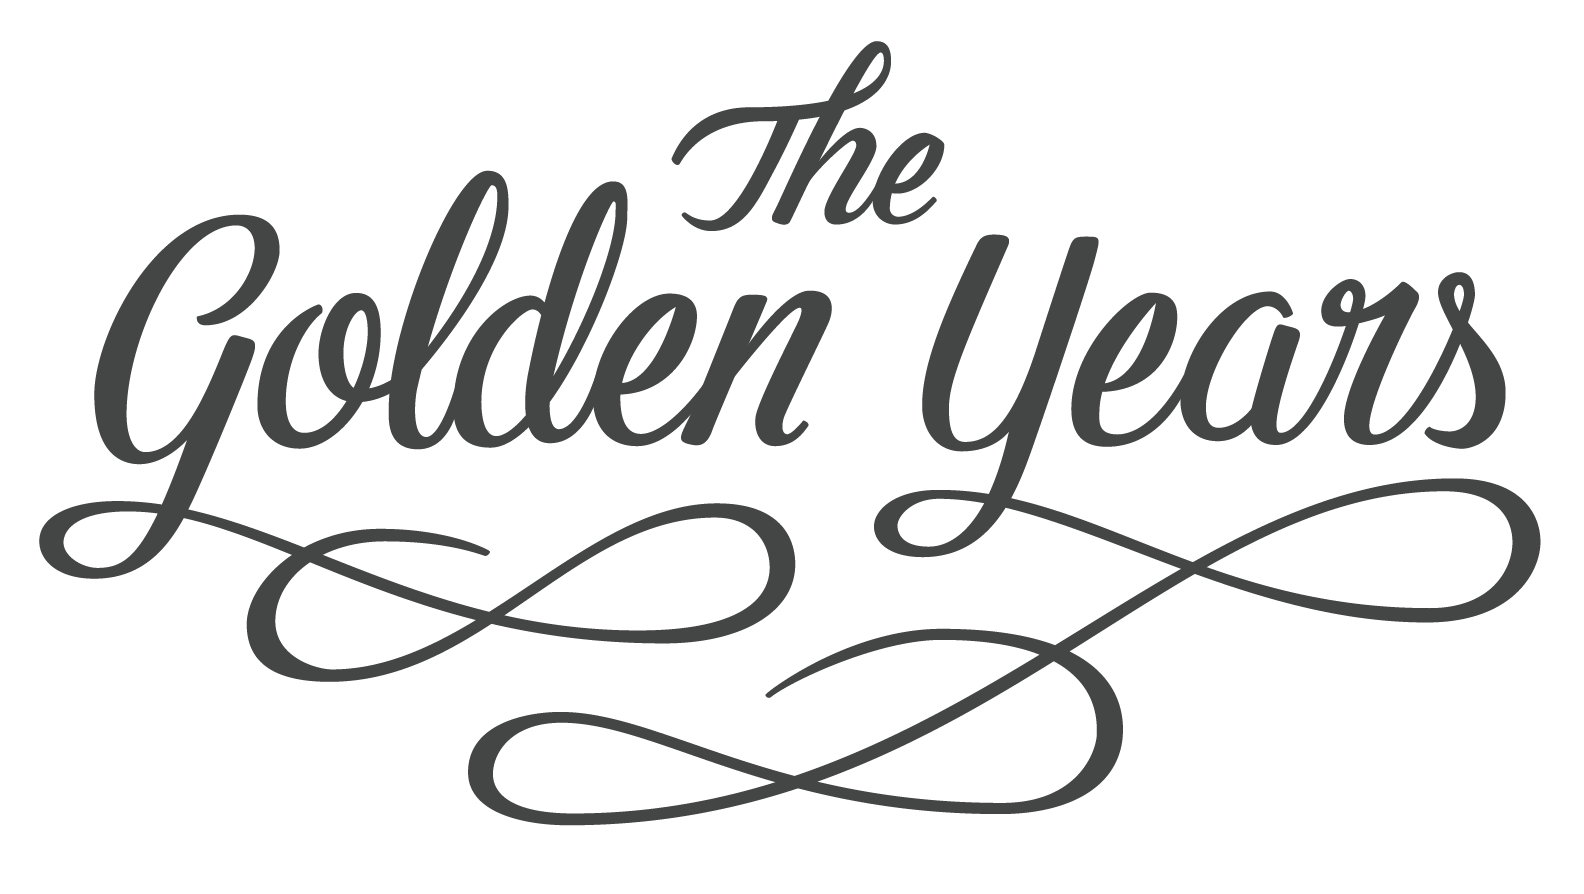 golden years lettering-01.png